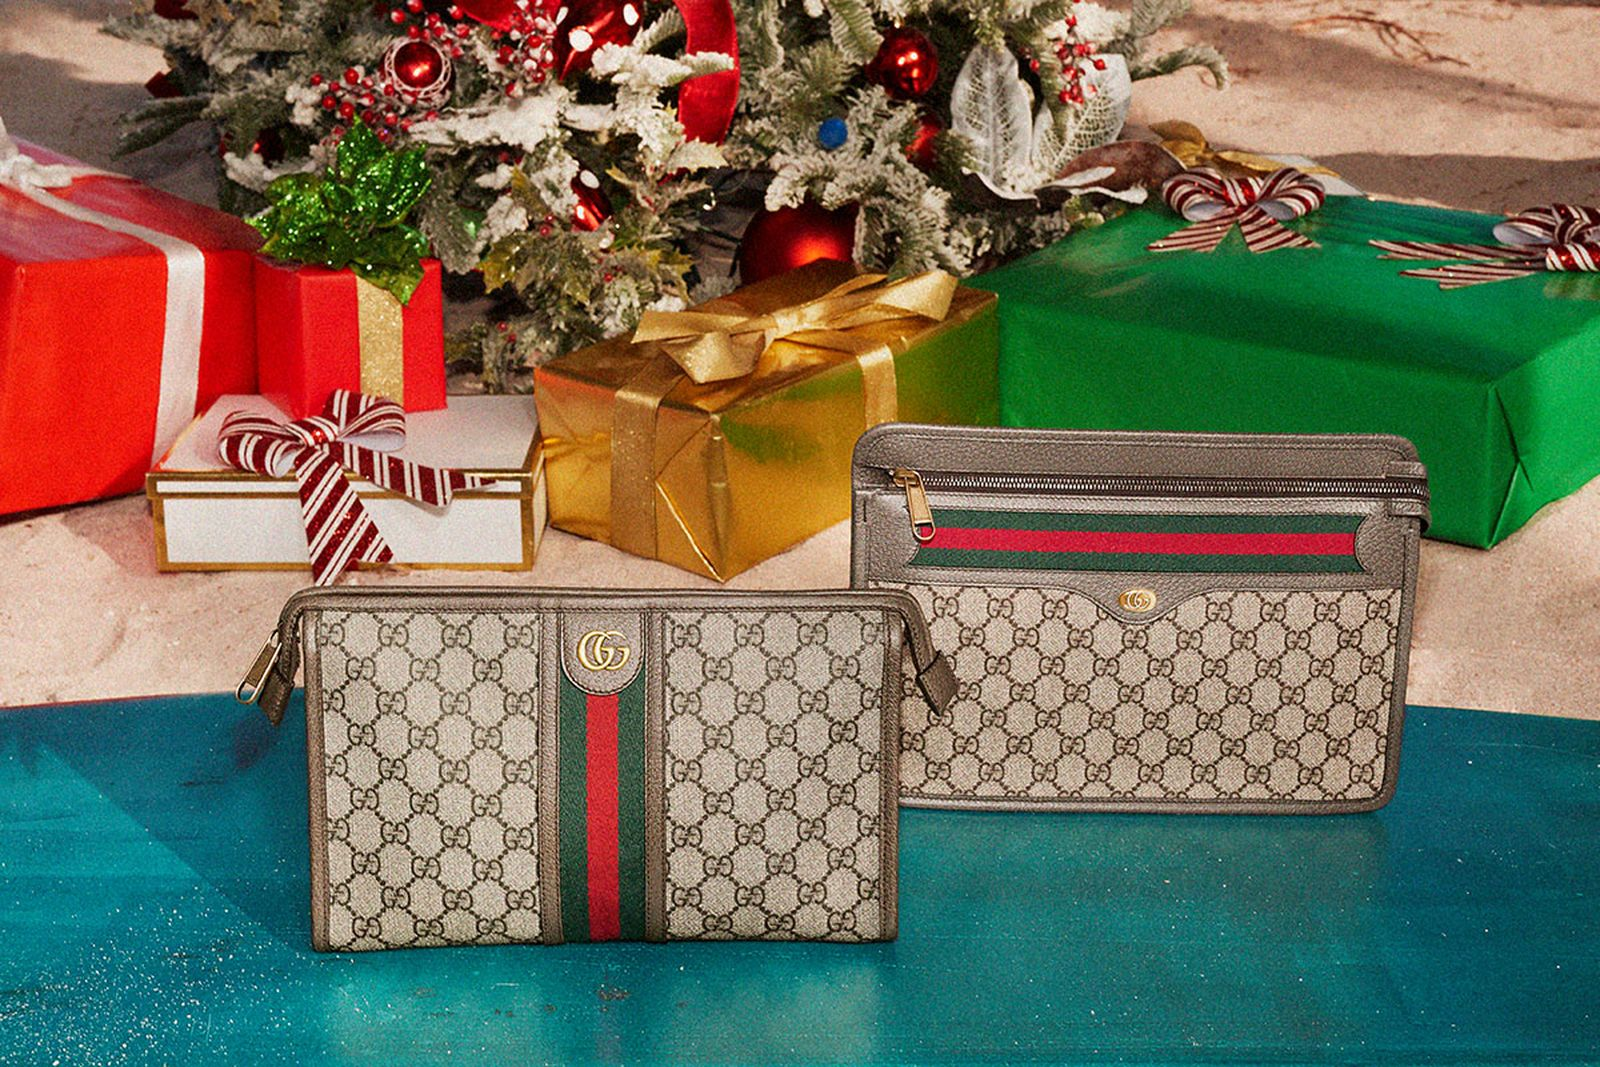 gucci-gift-giving-campaign-2019-62